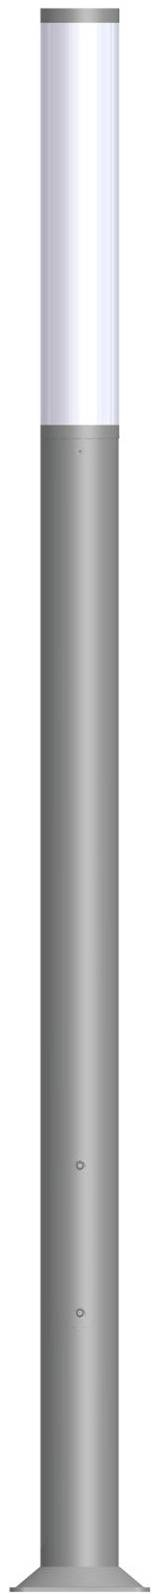 COLONNE LED KARIN 3600 LED